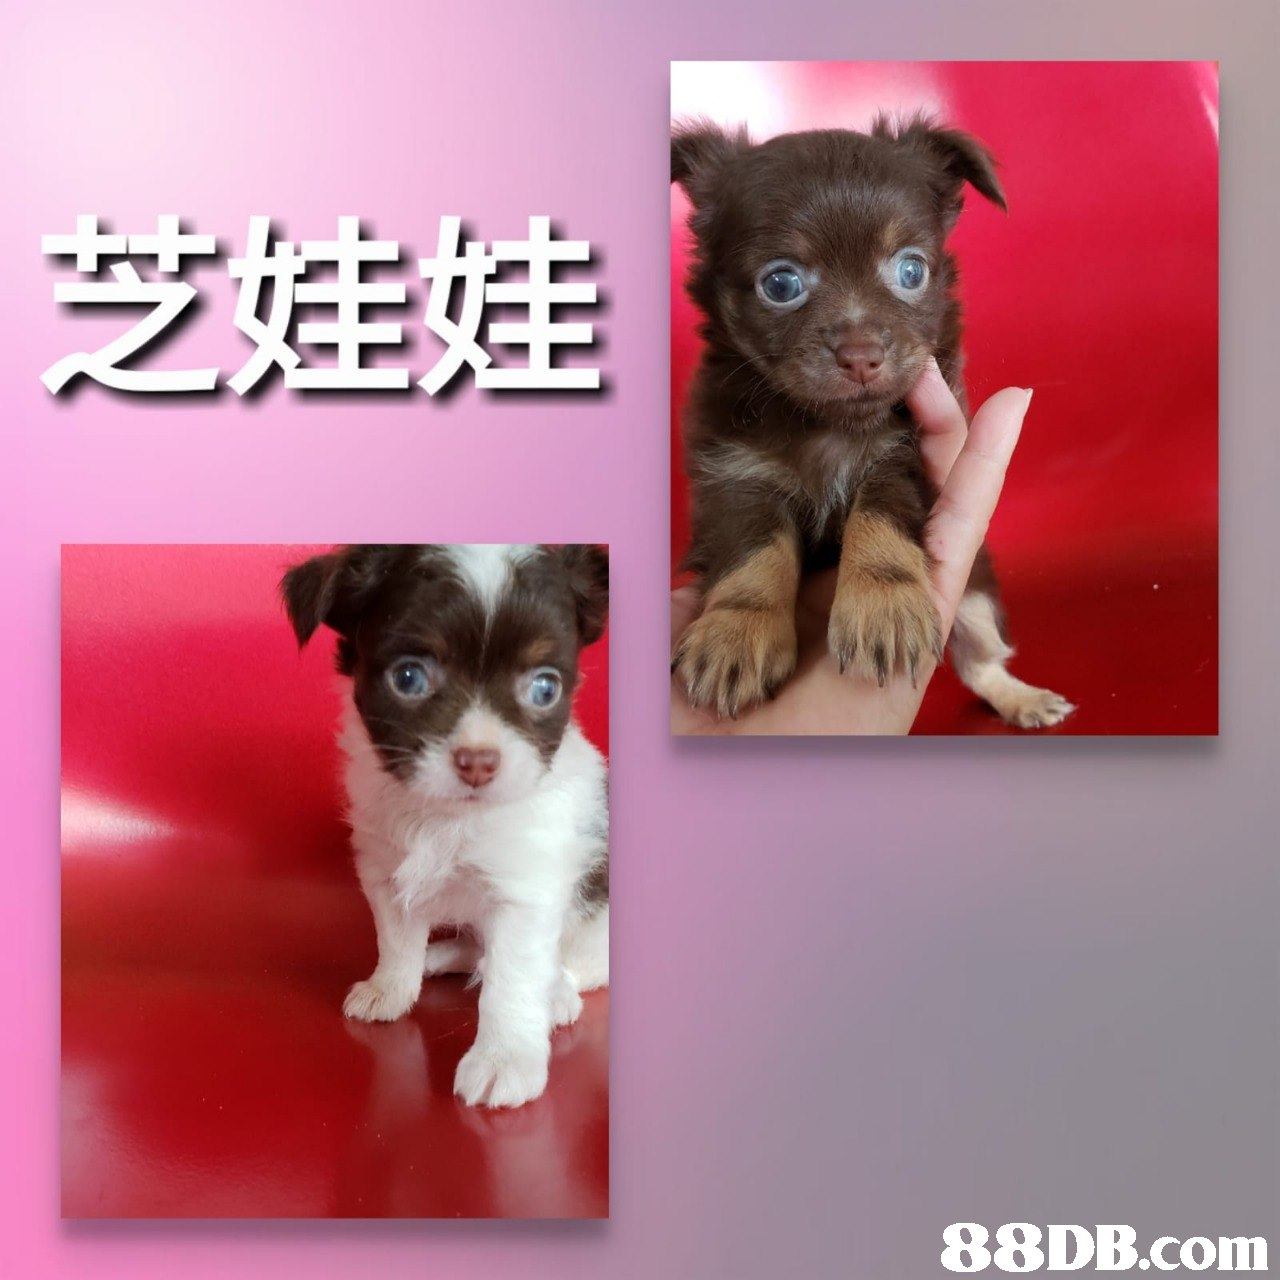 娃娃   dog,dog like mammal,dog breed,mammal,chihuahua